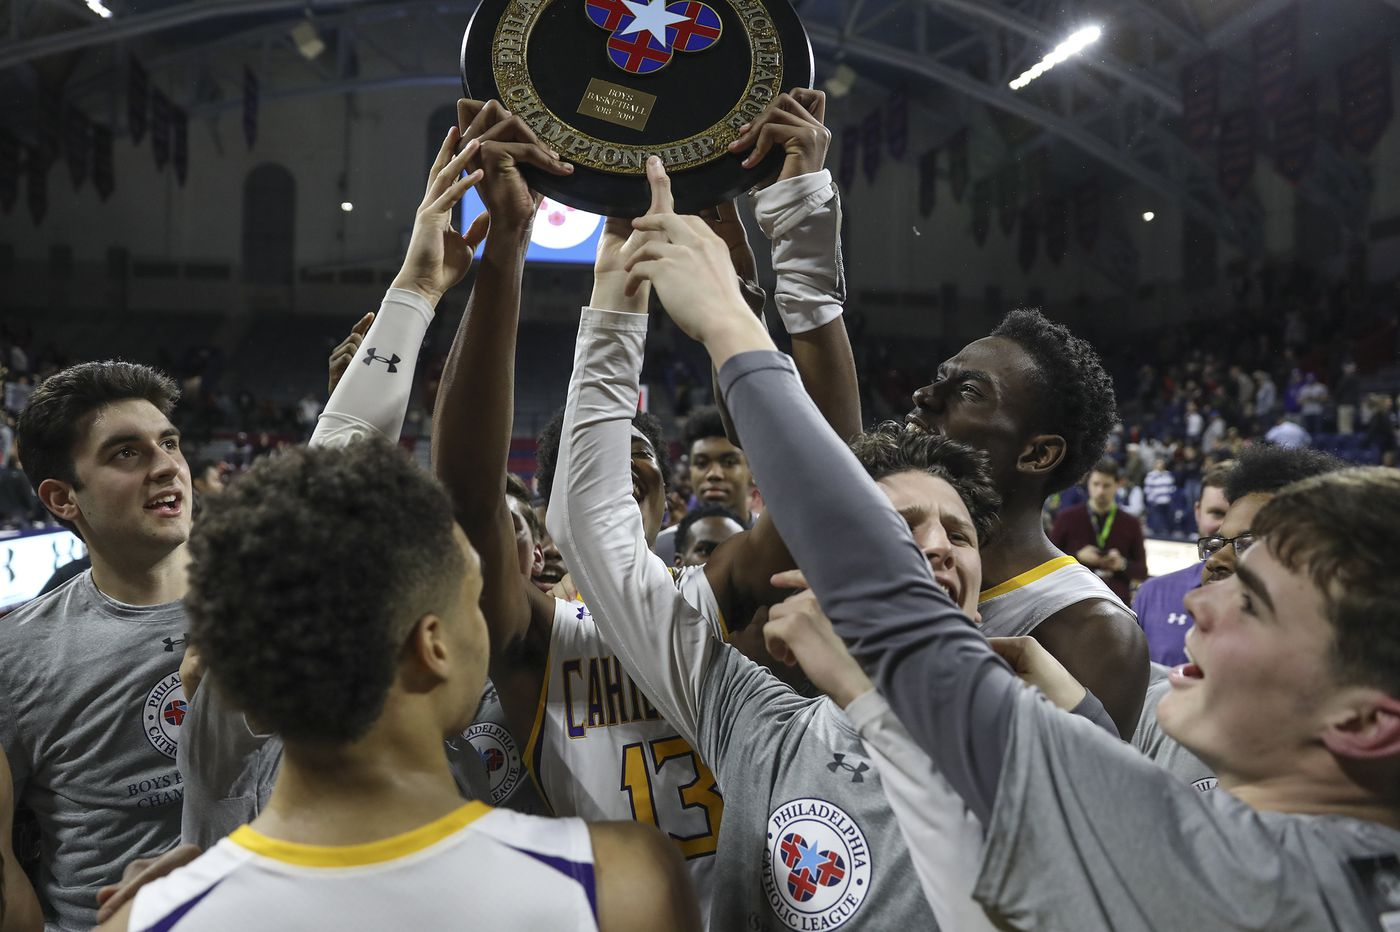 Roman Catholic, newest Catholic League champ, has special bonds with previous generations